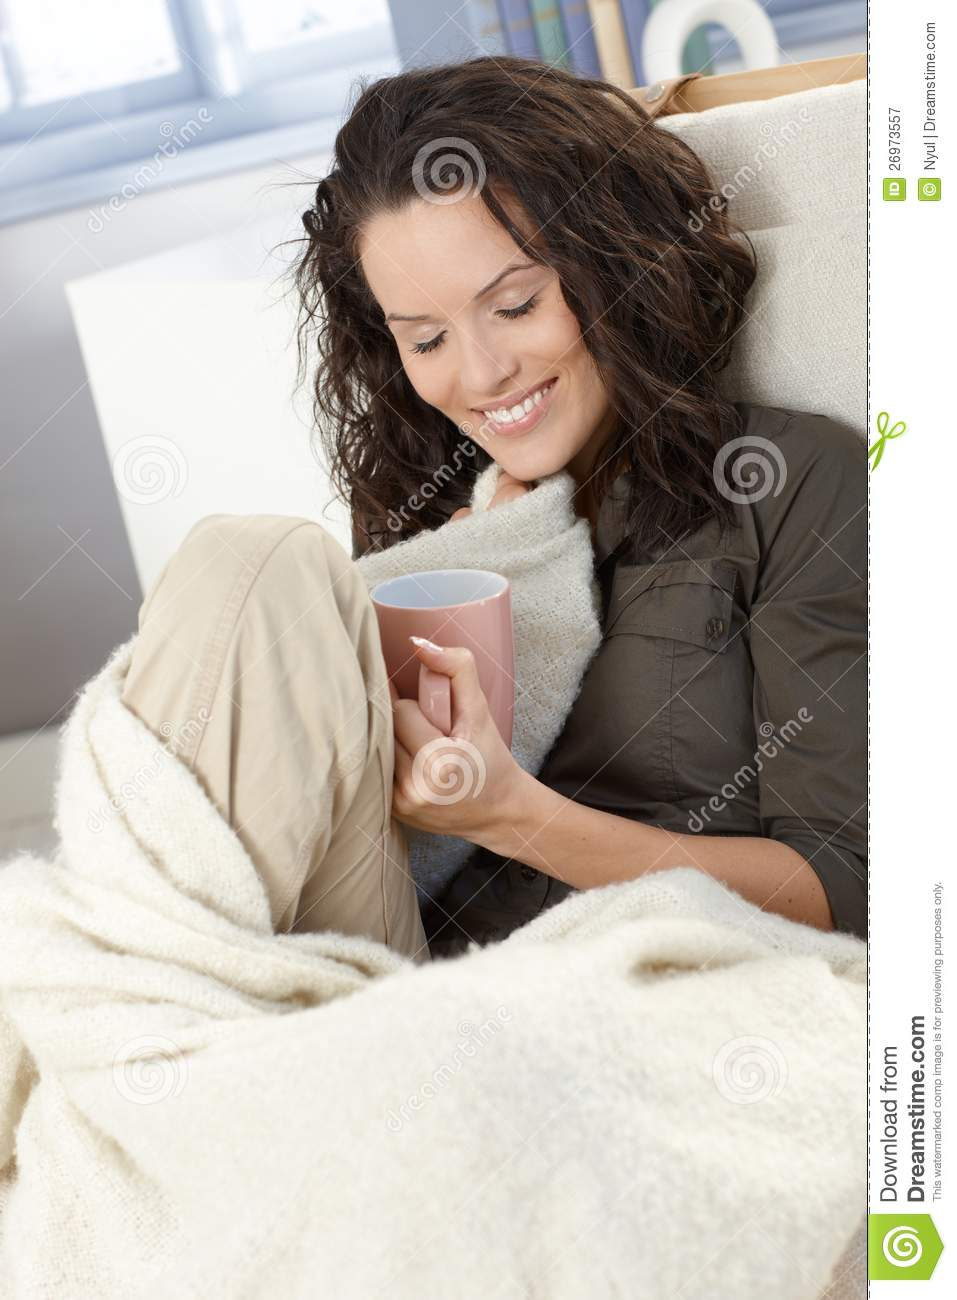 cee2a1bbb3 Happy Woman Cuddling Blanket Stock Images - Download 268 Royalty Free Photos